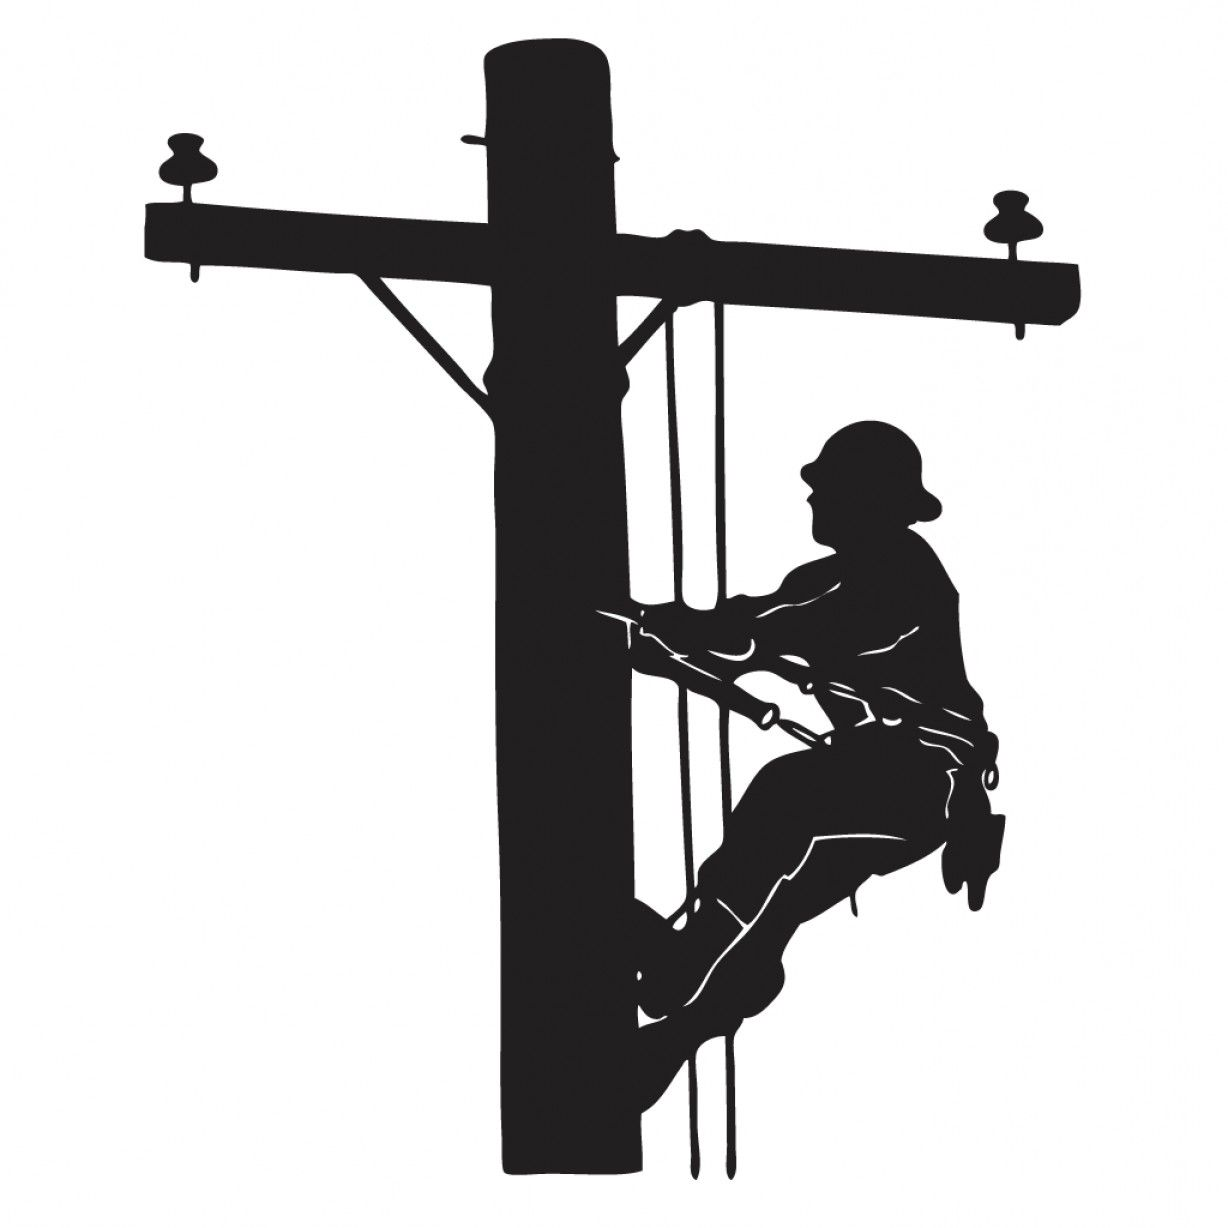 Image result for free download pictures of lineman on poles.